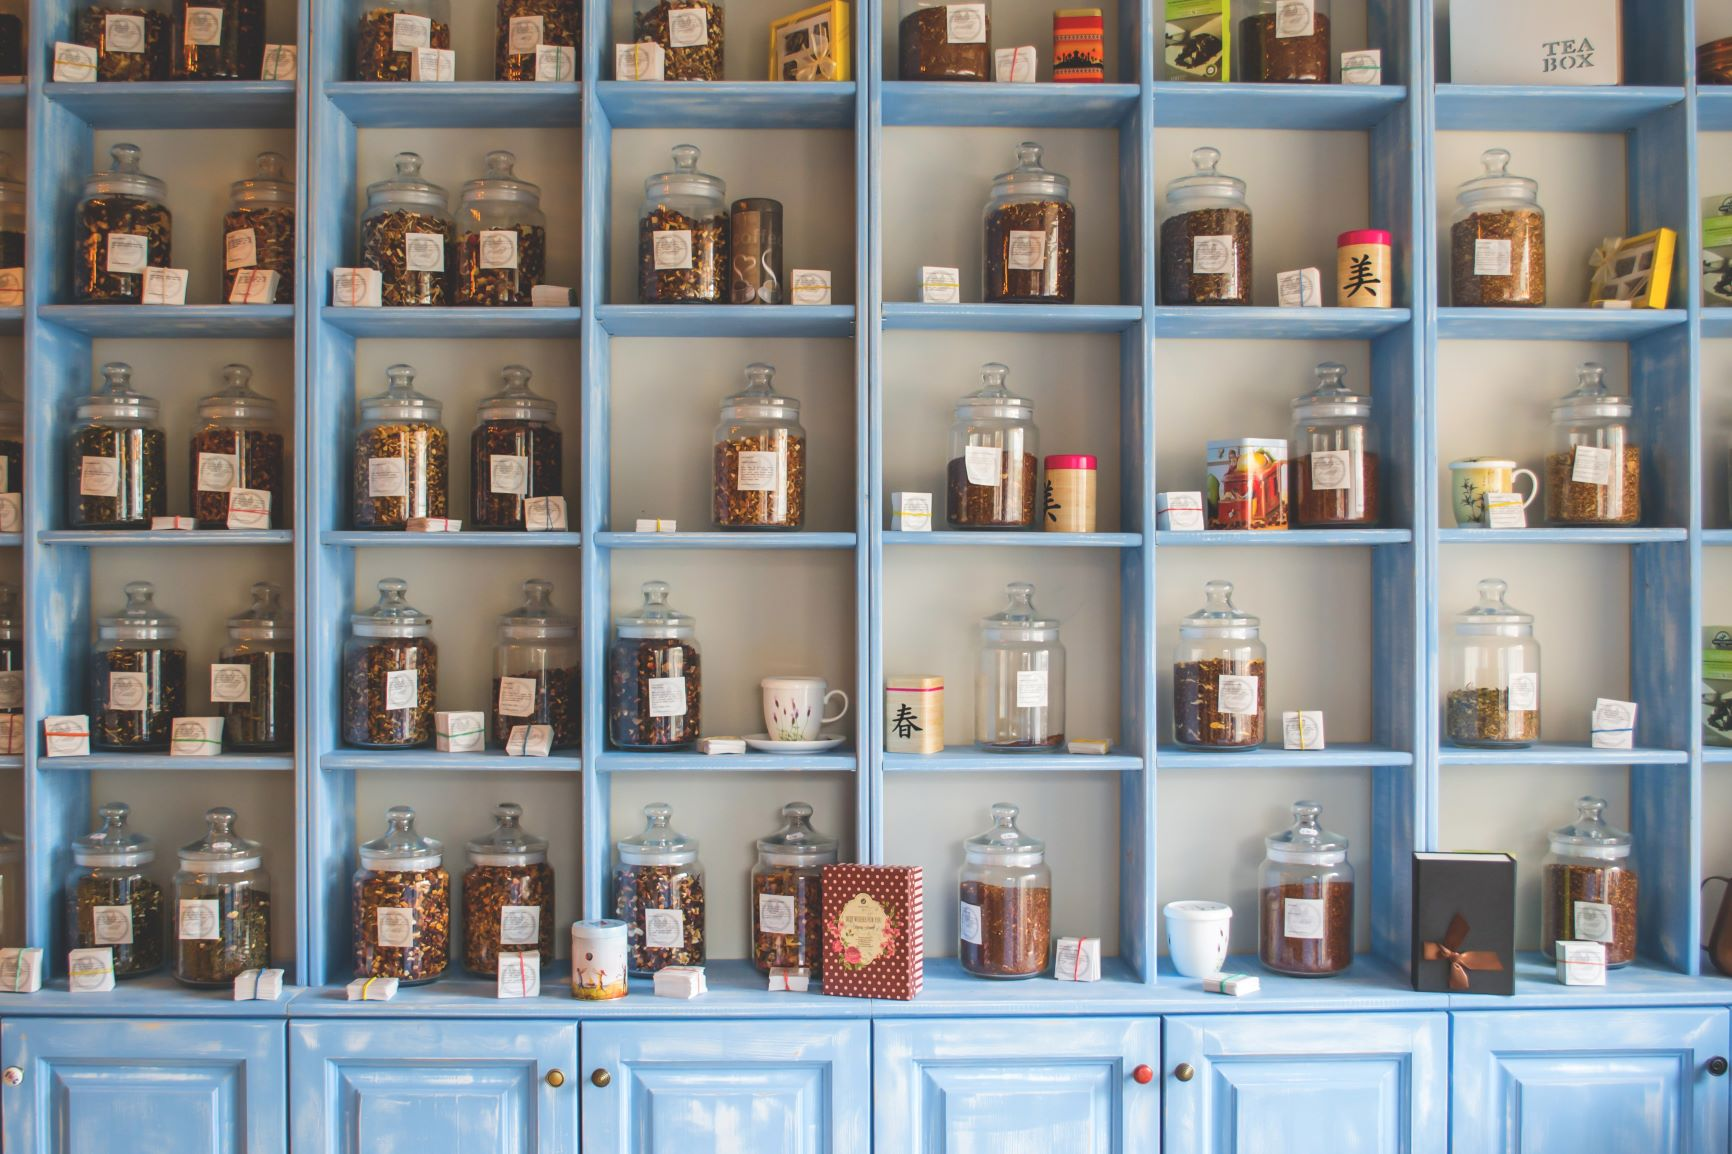 assorted-jars-on-blue-shelf-cabinets-165228